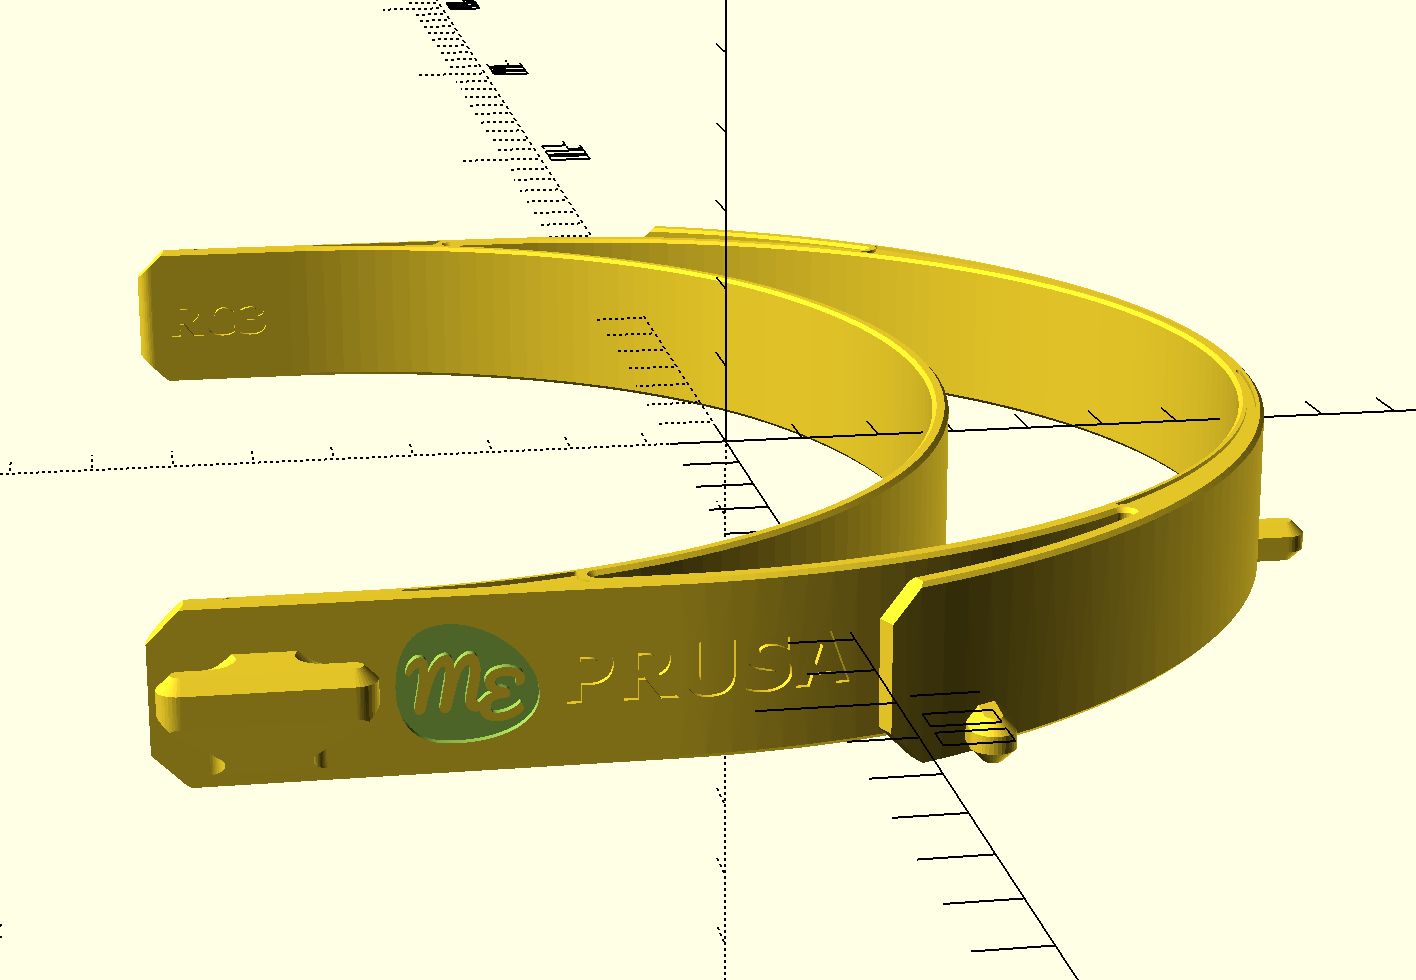 Screenshot of the object stamped with the logo in OpenSCAD